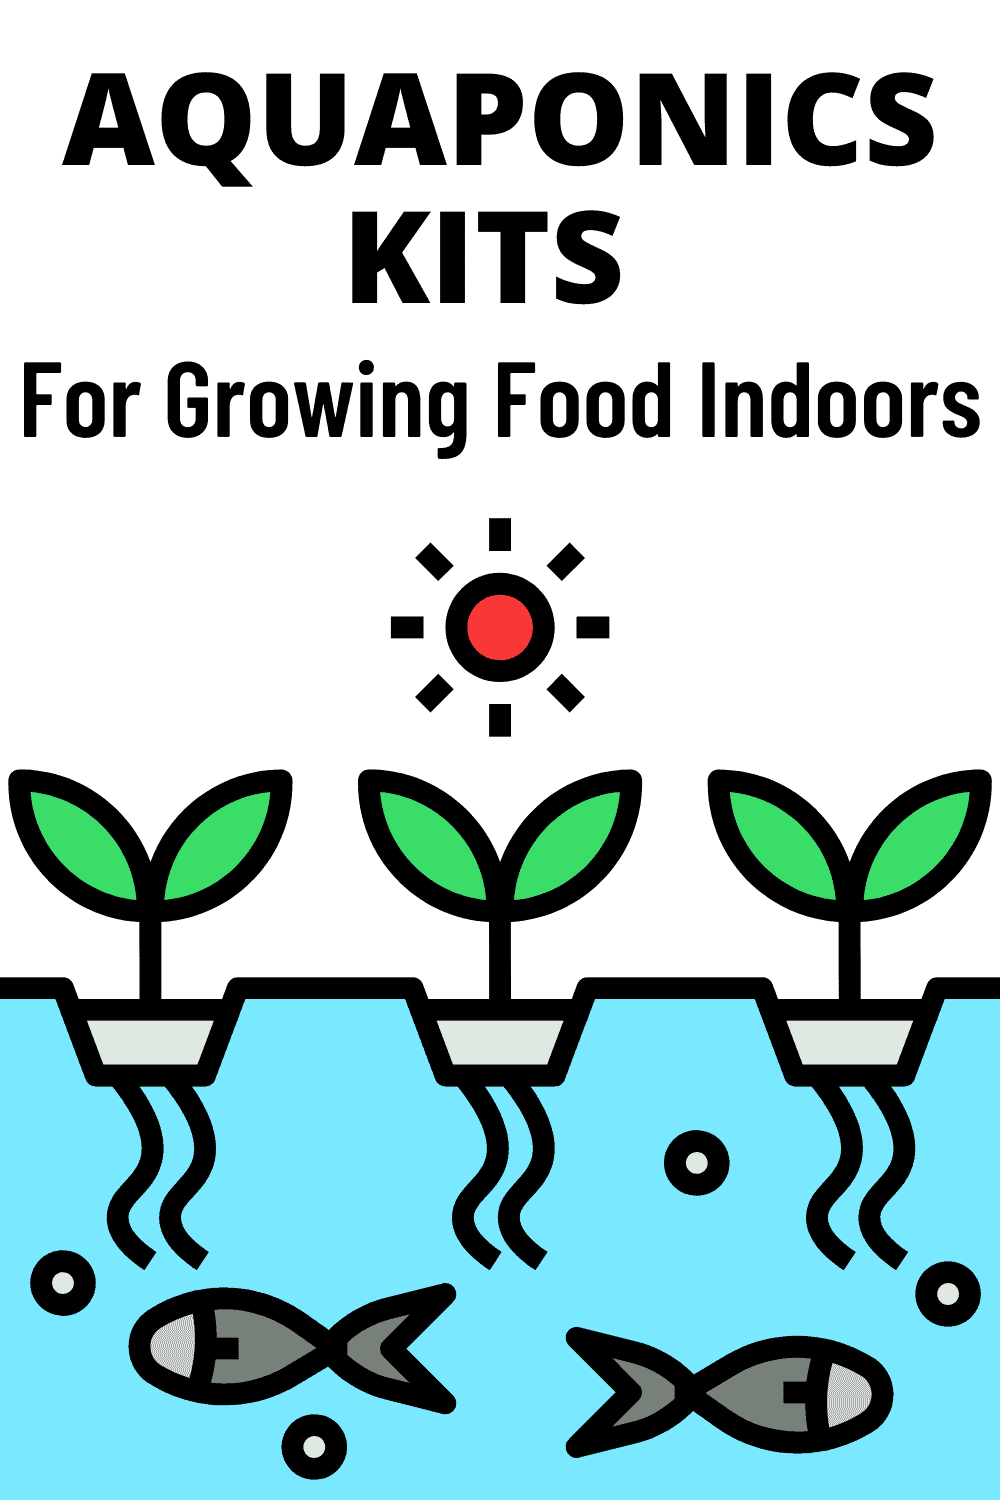 Home Aquaponics kits